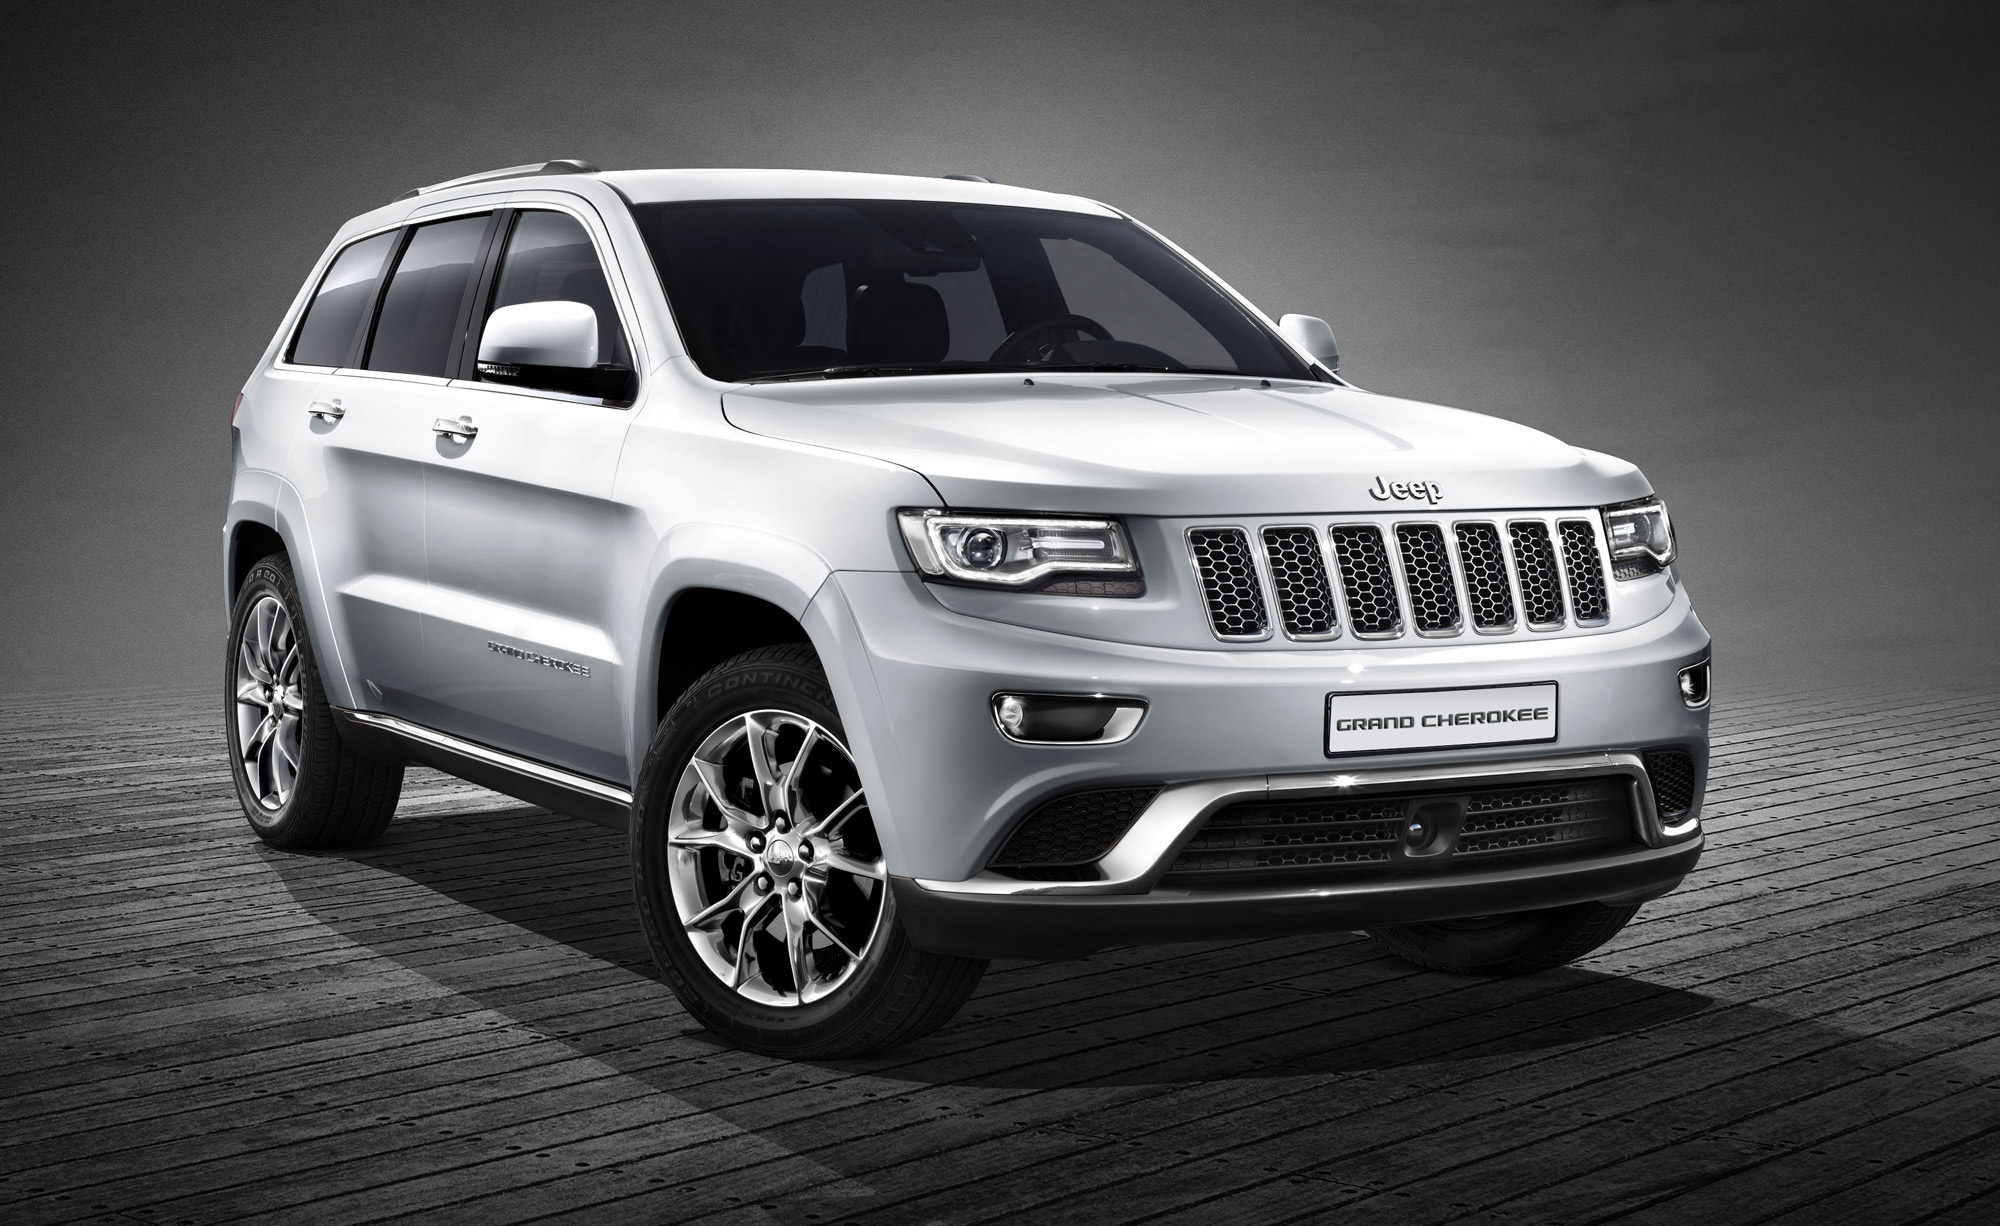 jeep grand cherokee 2014. Black Bedroom Furniture Sets. Home Design Ideas